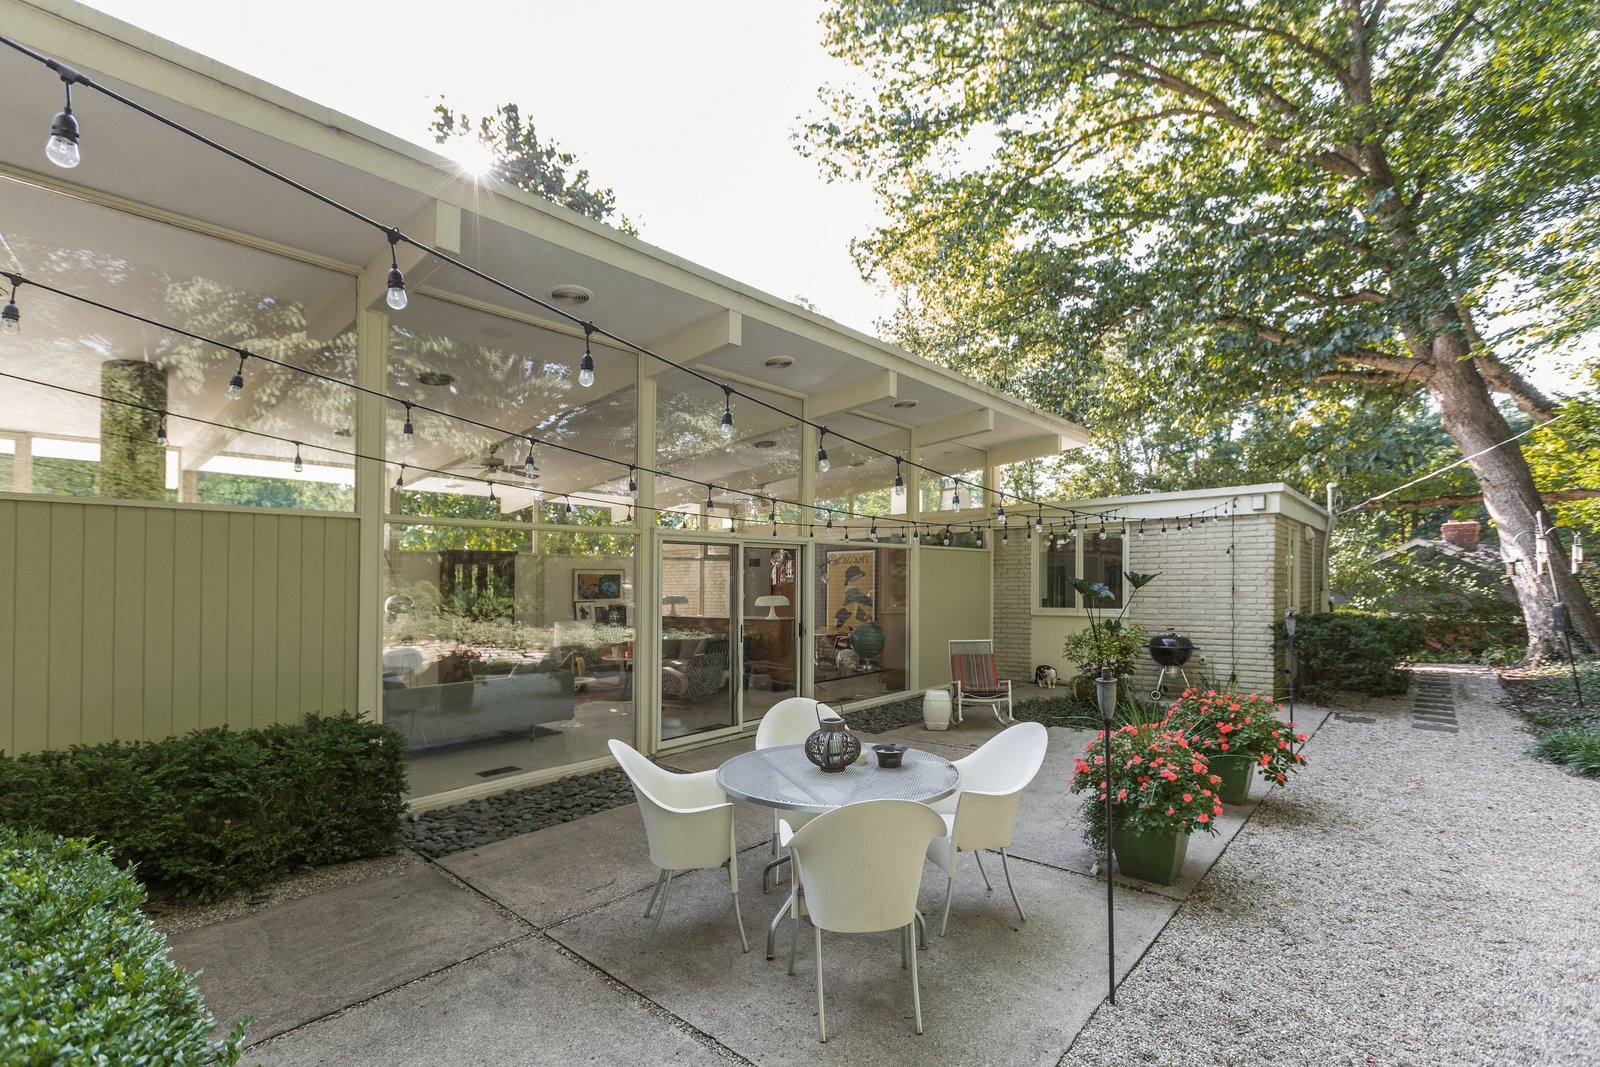 Outdoor, Pavers Patio, Porch, Deck, Concrete Patio, Porch, Deck, Back Yard, Trees, Shrubs, Grass, Hanging Lighting, and Planters Patio, Porch, Deck  Photo 9 of 10 in A Midcentury Gem by a Famed Indiana Architect Offered at $450K